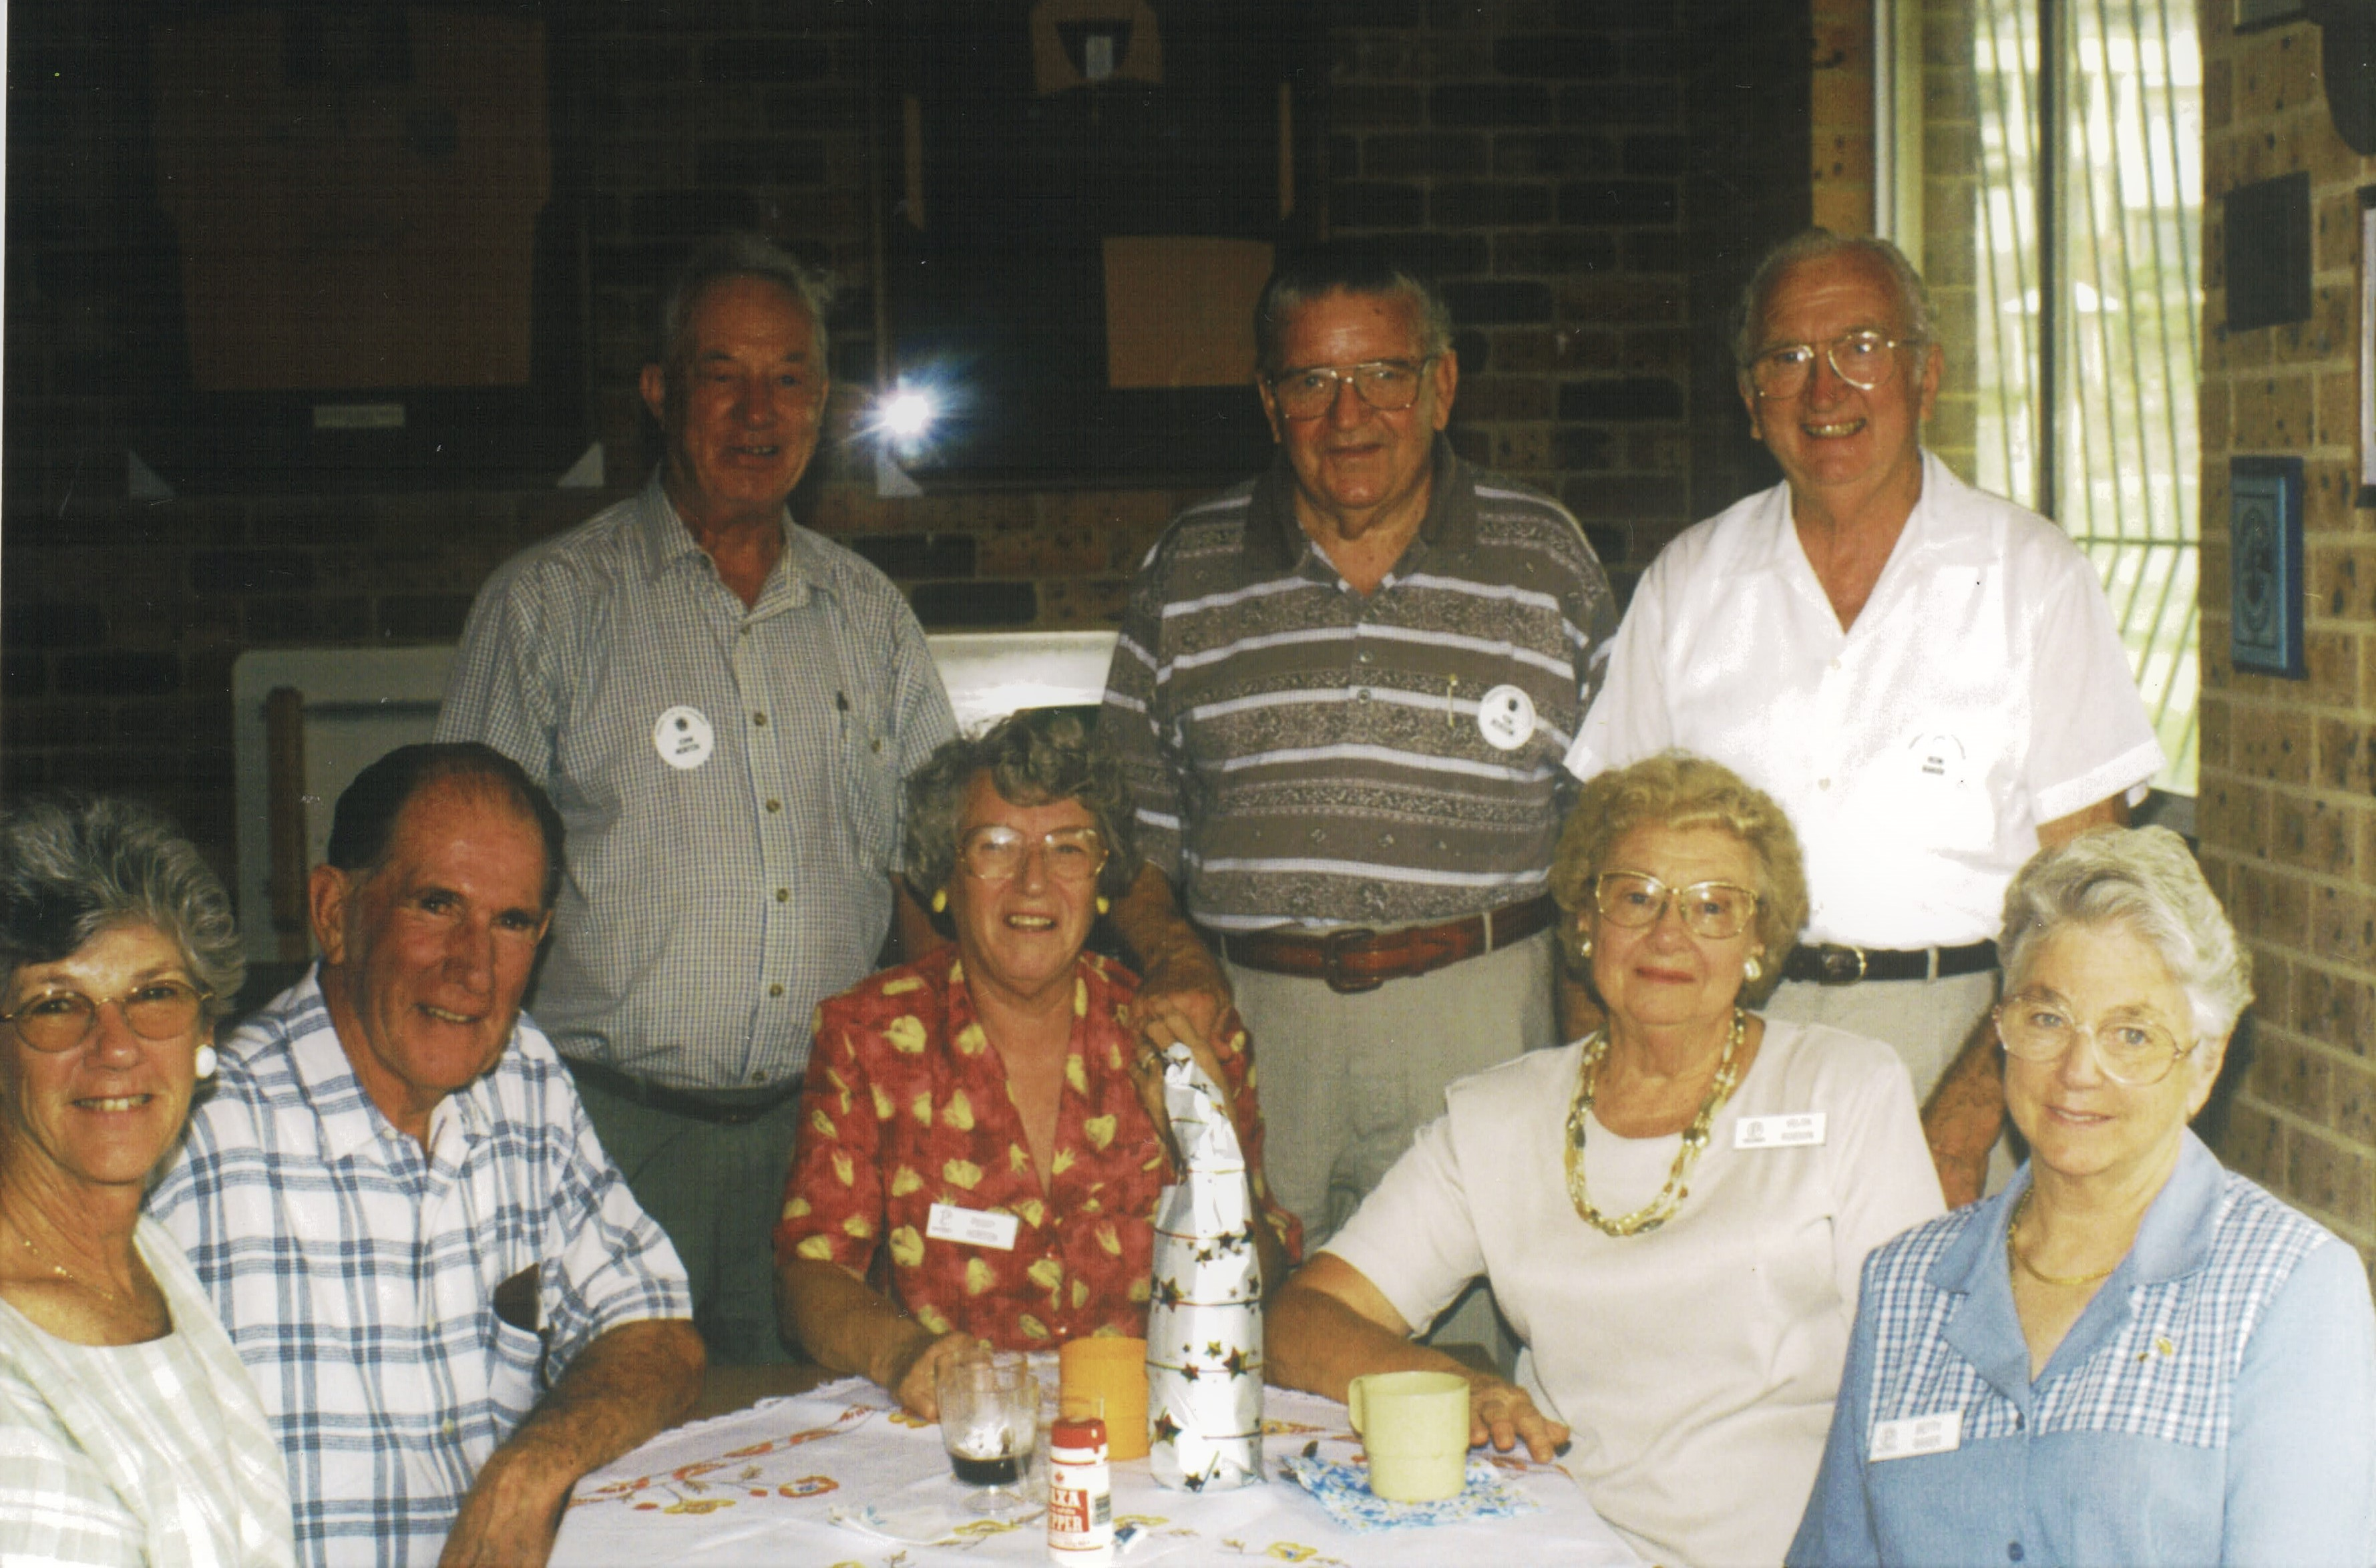 1999 Outings Barbecue at Avoca 9-2-99